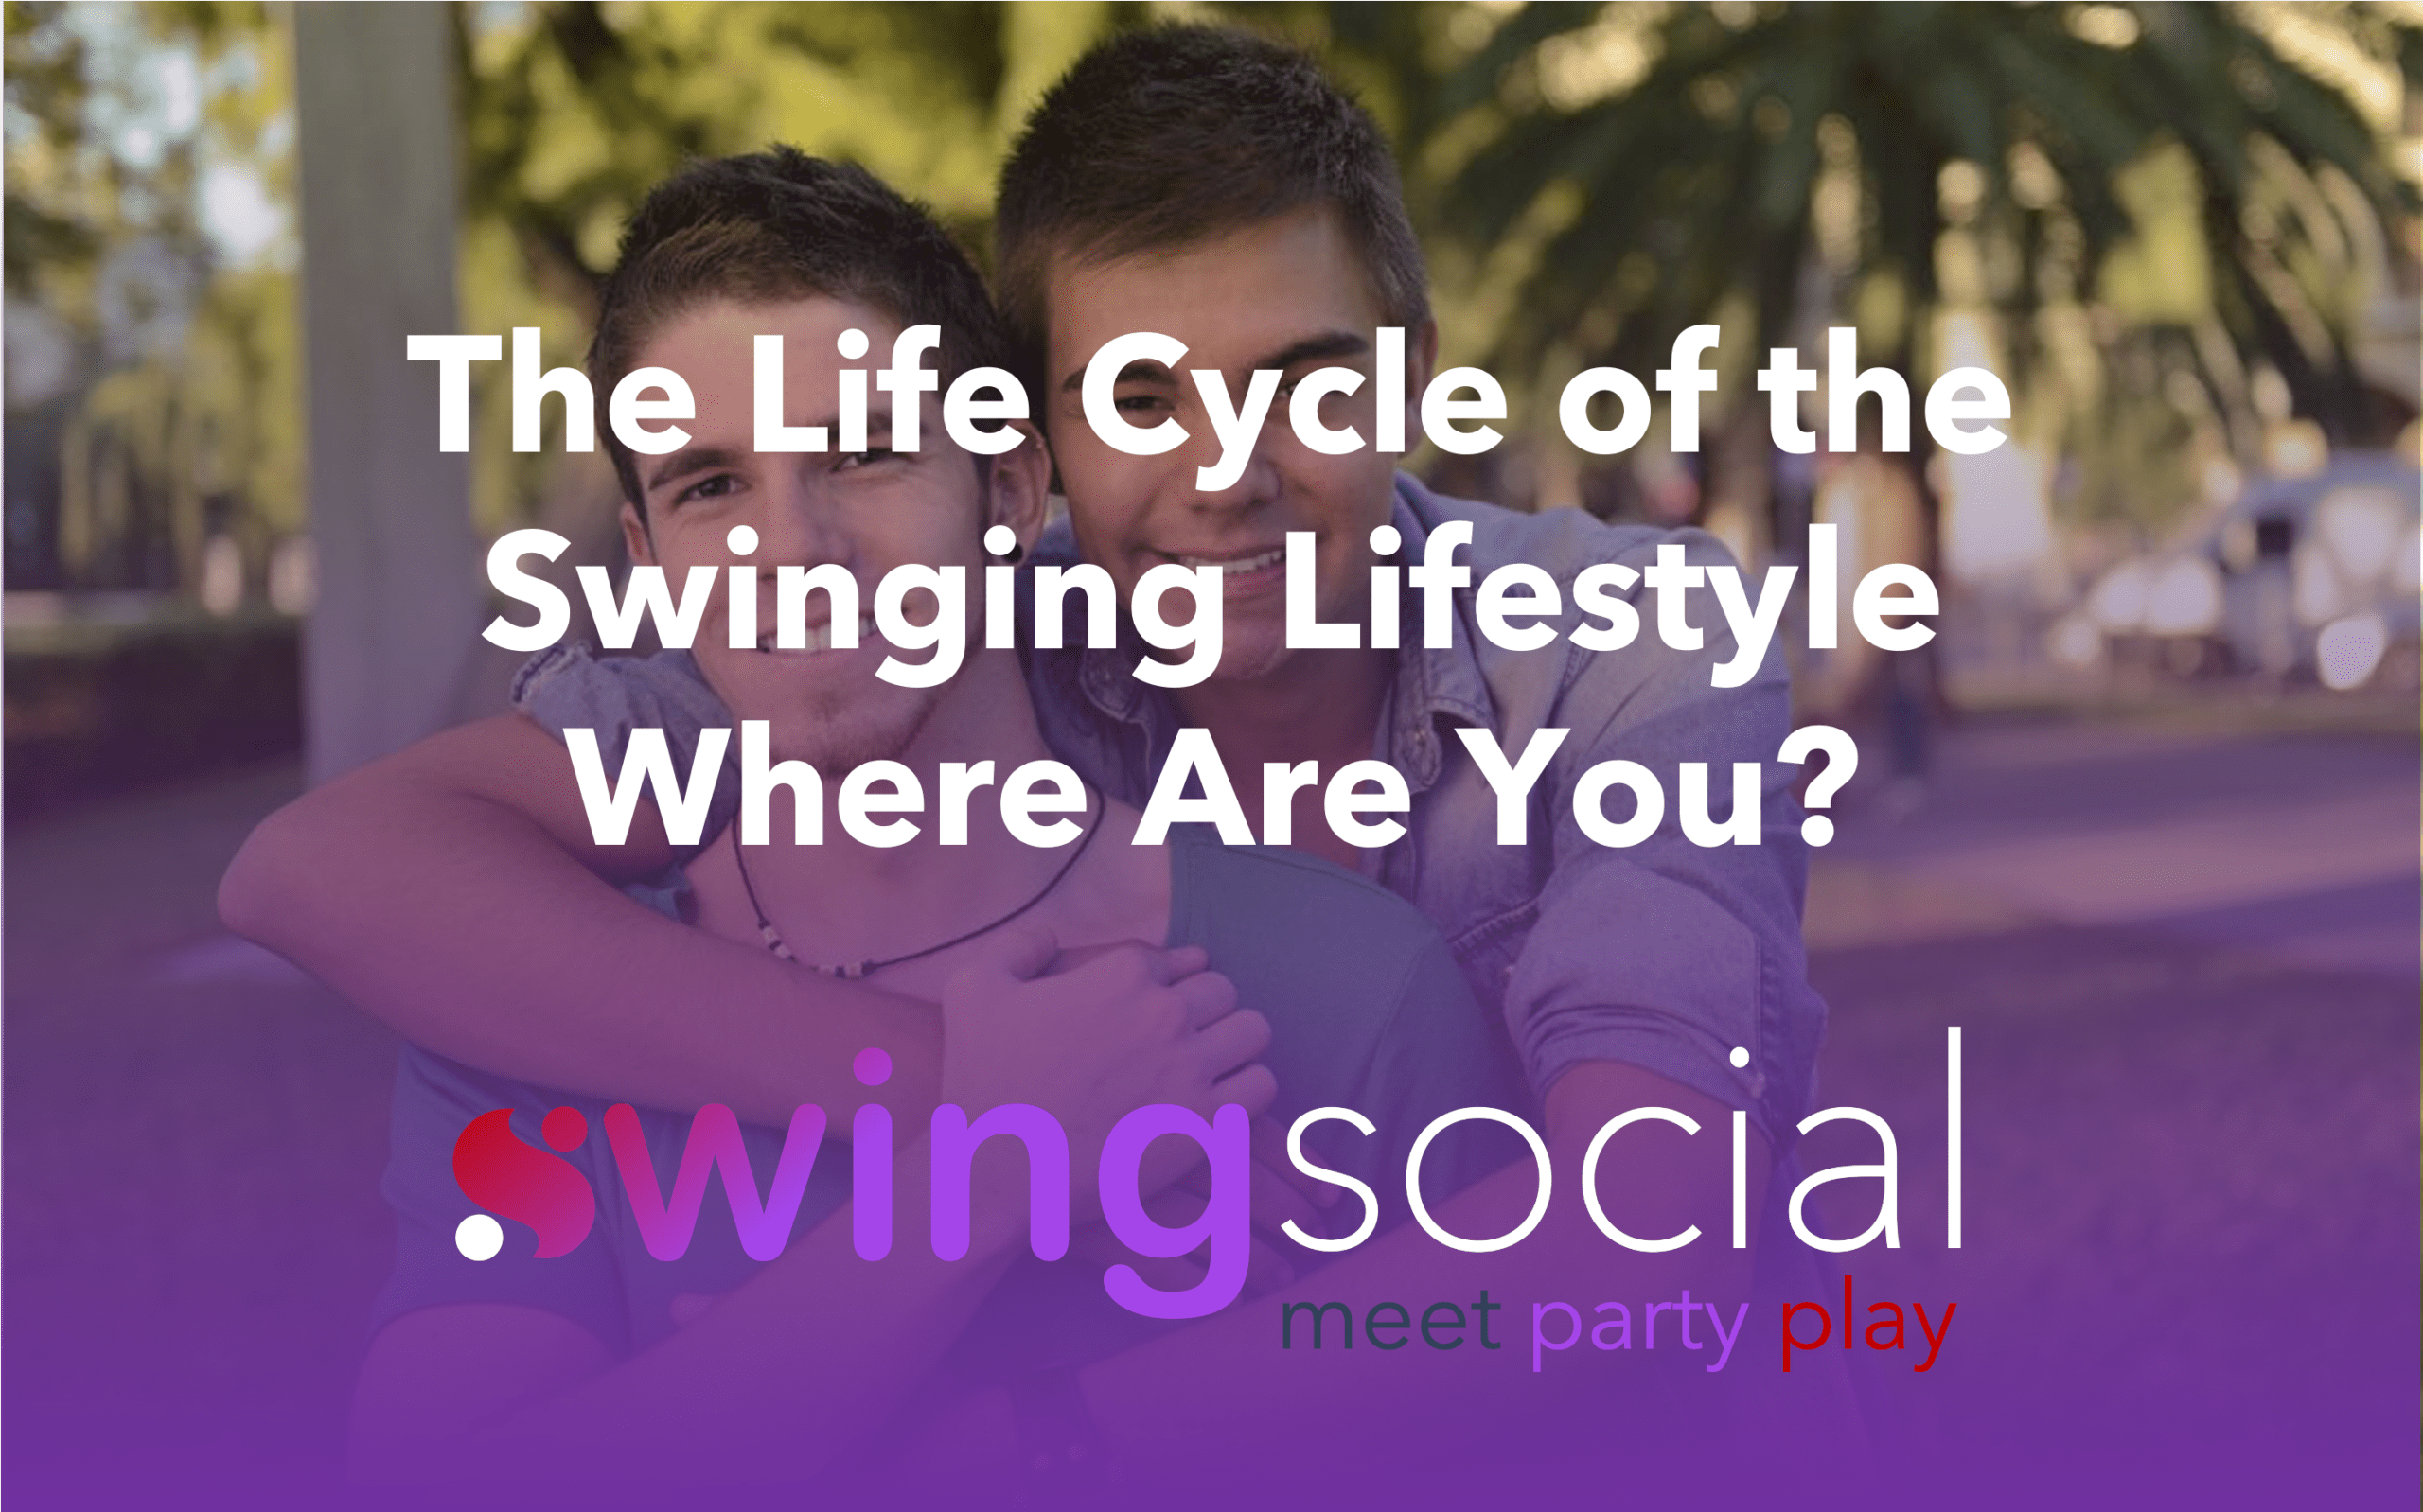 The Life Cycle of the Swinging Lifestyle. Where are you?